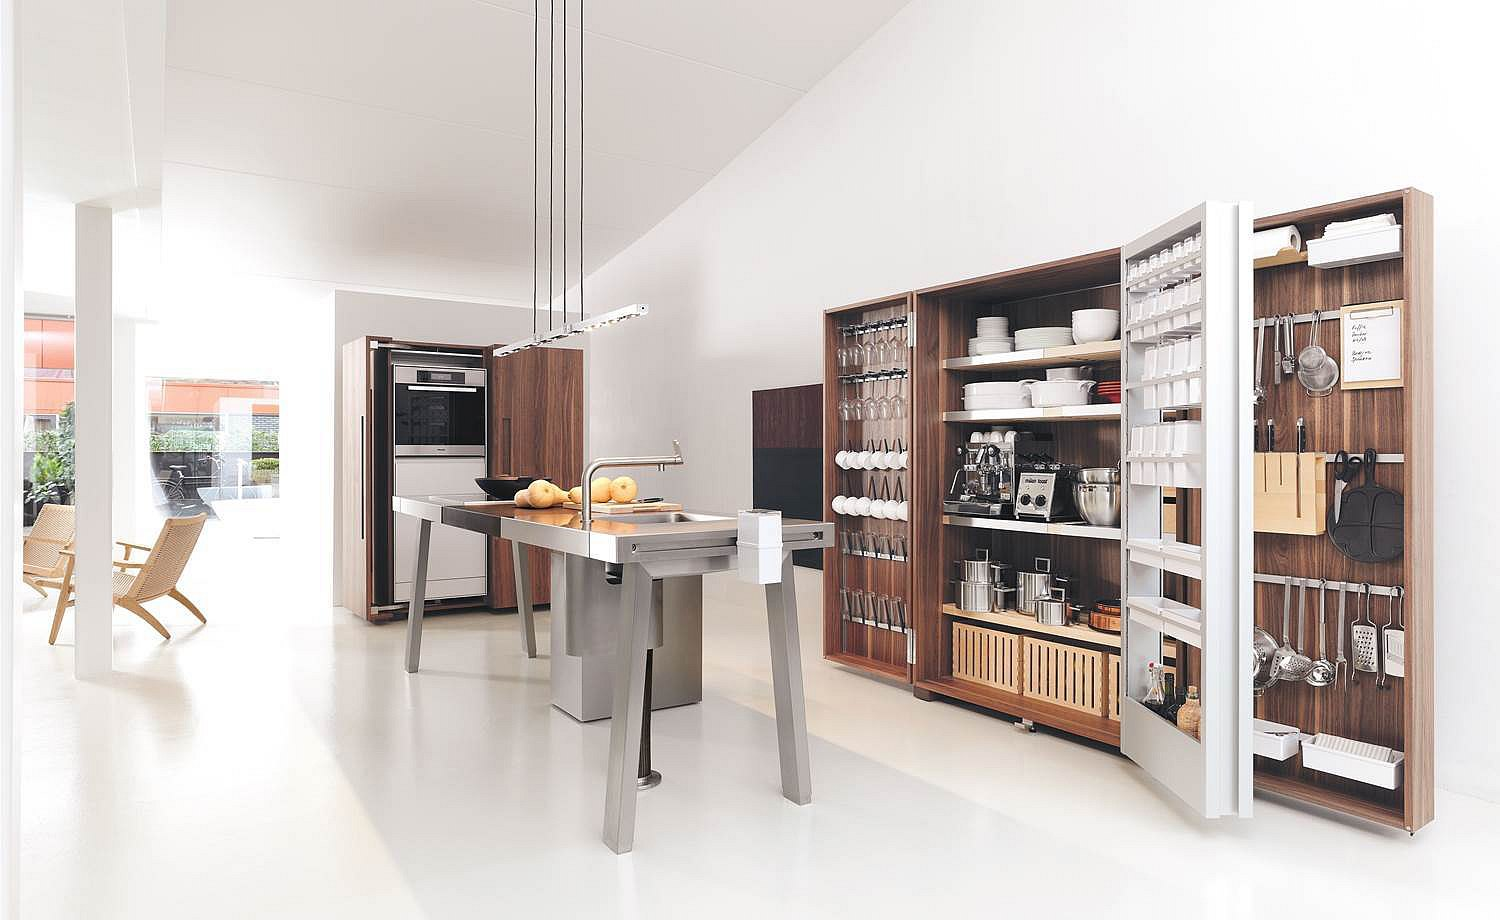 2010: Introduction of b2: the kitchen workshop comprising workbench, tool cabinet, and equipment cabinet elements